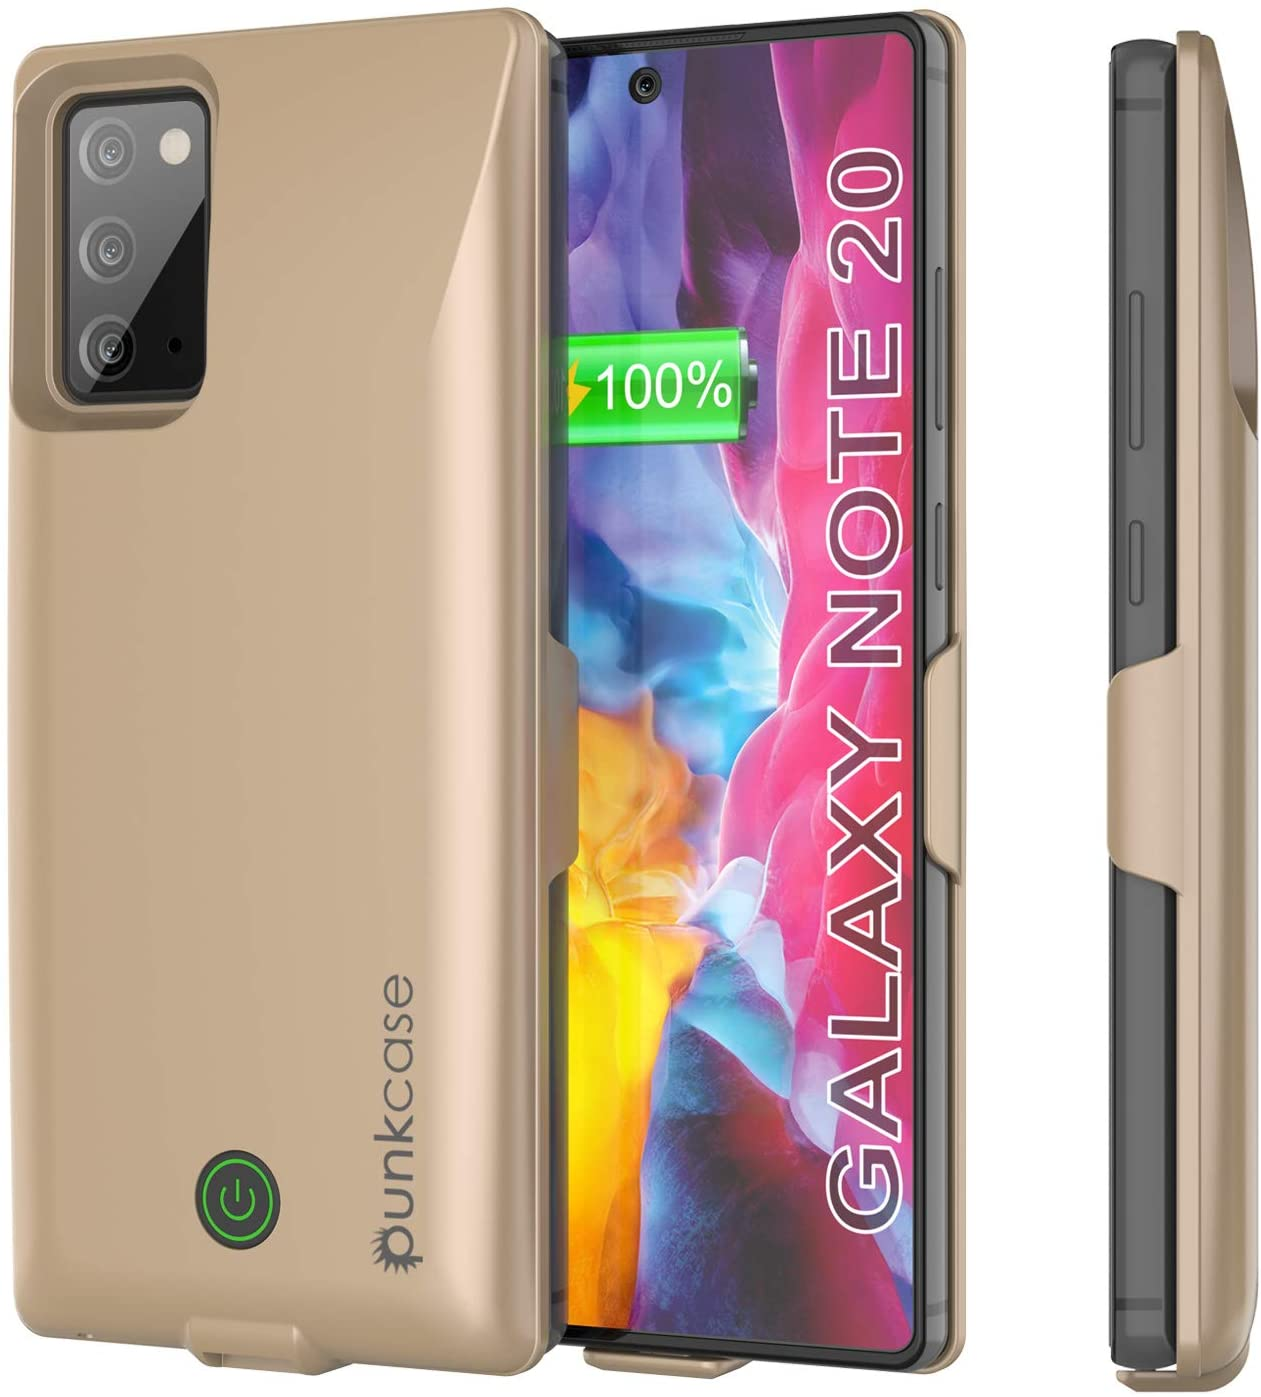 Galaxy Note 20 6000mAH Battery Charger PunkJuice 2.0 Slim Case [Gold]